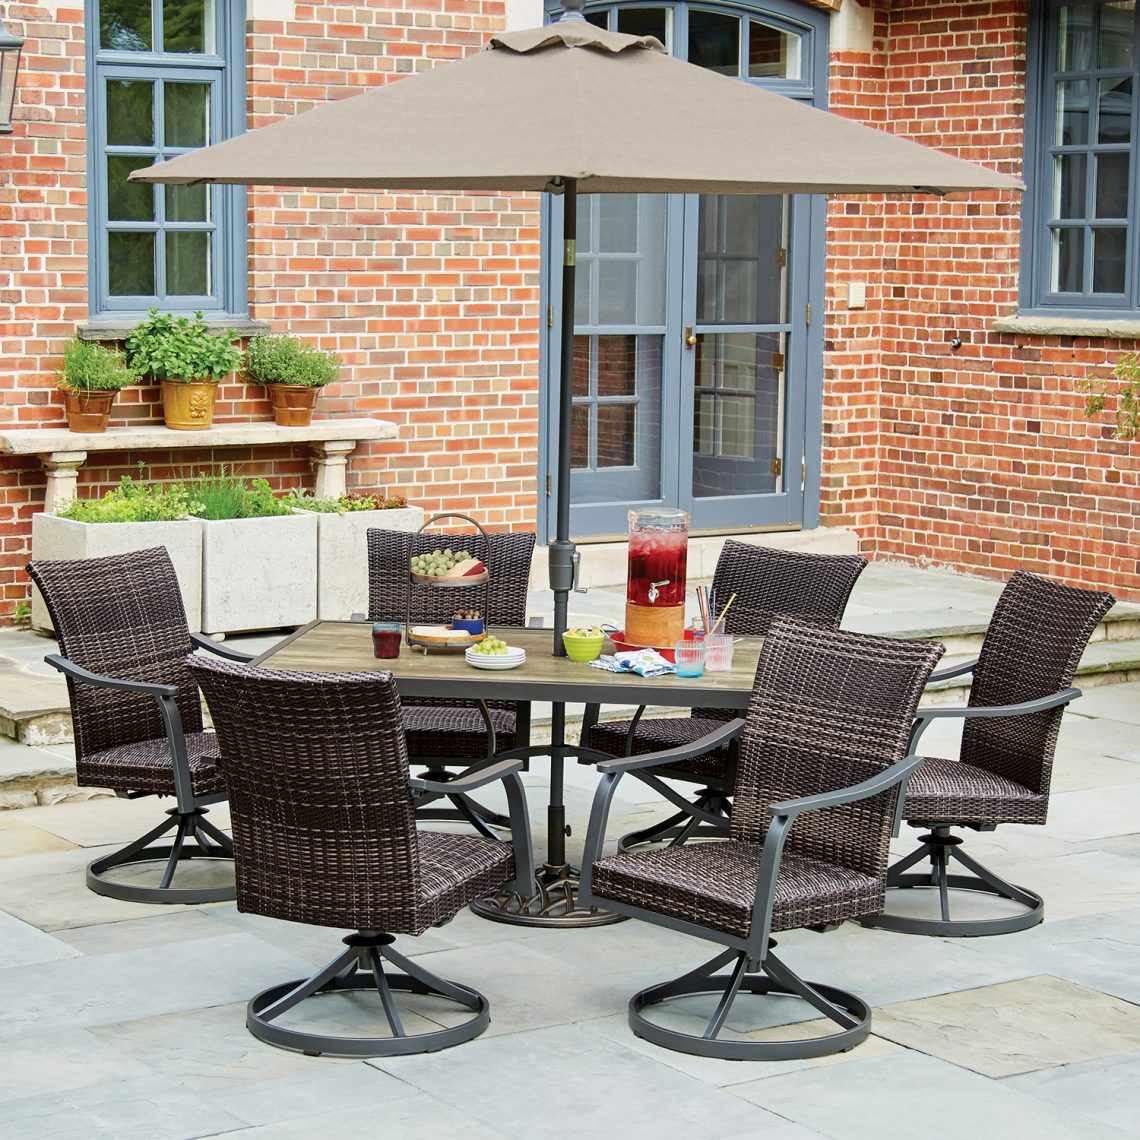 A Great Selection Of Outdoor Furniture, Seasonal Garden Products, And Patio  Accessories.